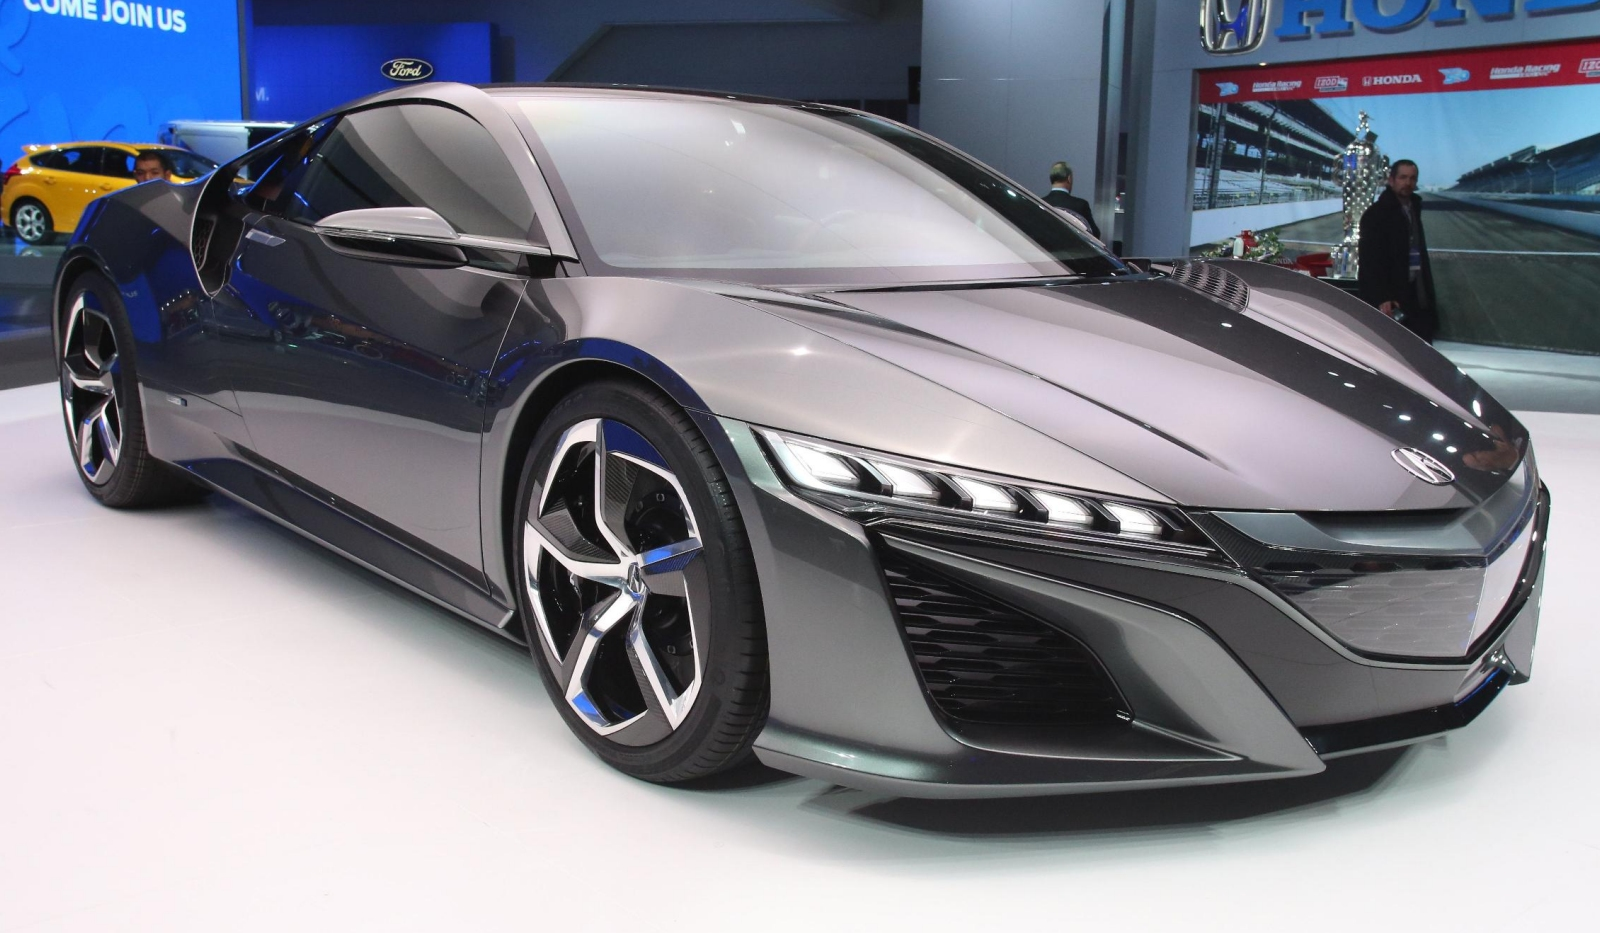 2015 Acura NSX Release Date and Price